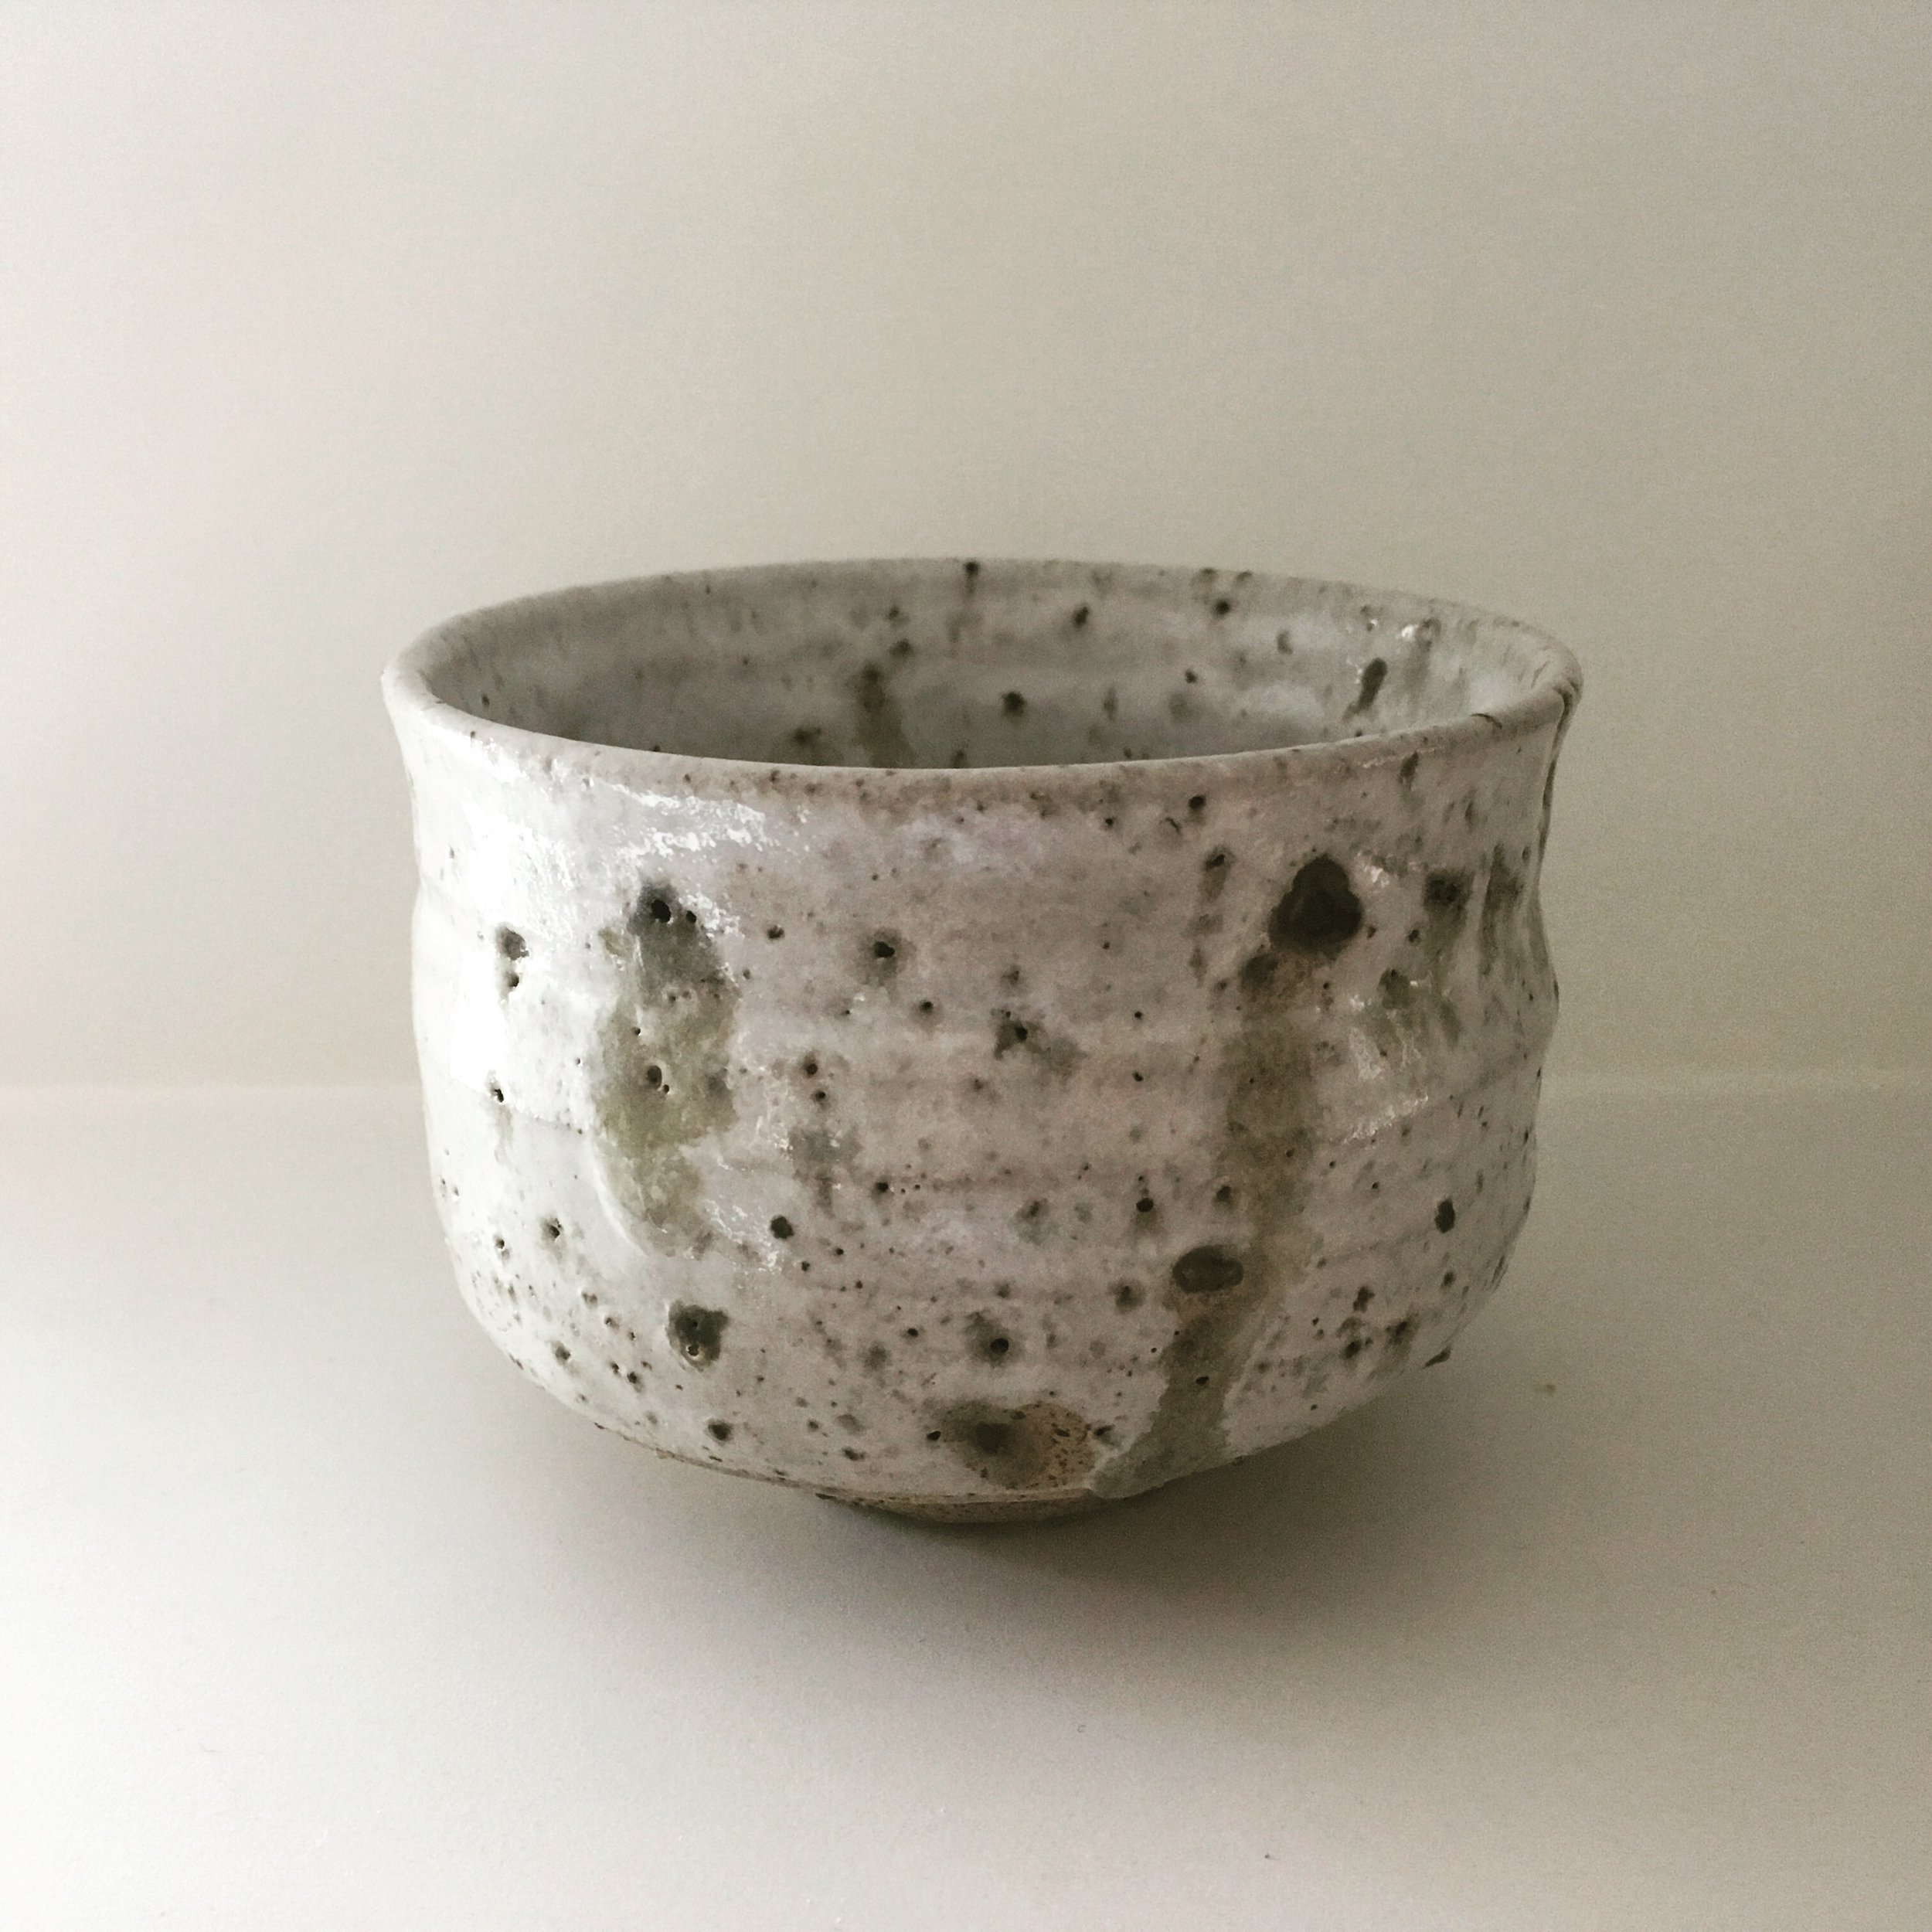 Chawan   Unsieved and unwashed local clay from Stanage Edge (Odin Mine), Peak District, UK mixed with stoneware. Zirconium glaze.  NOT FOOD SAFE  Ø 11 - €30